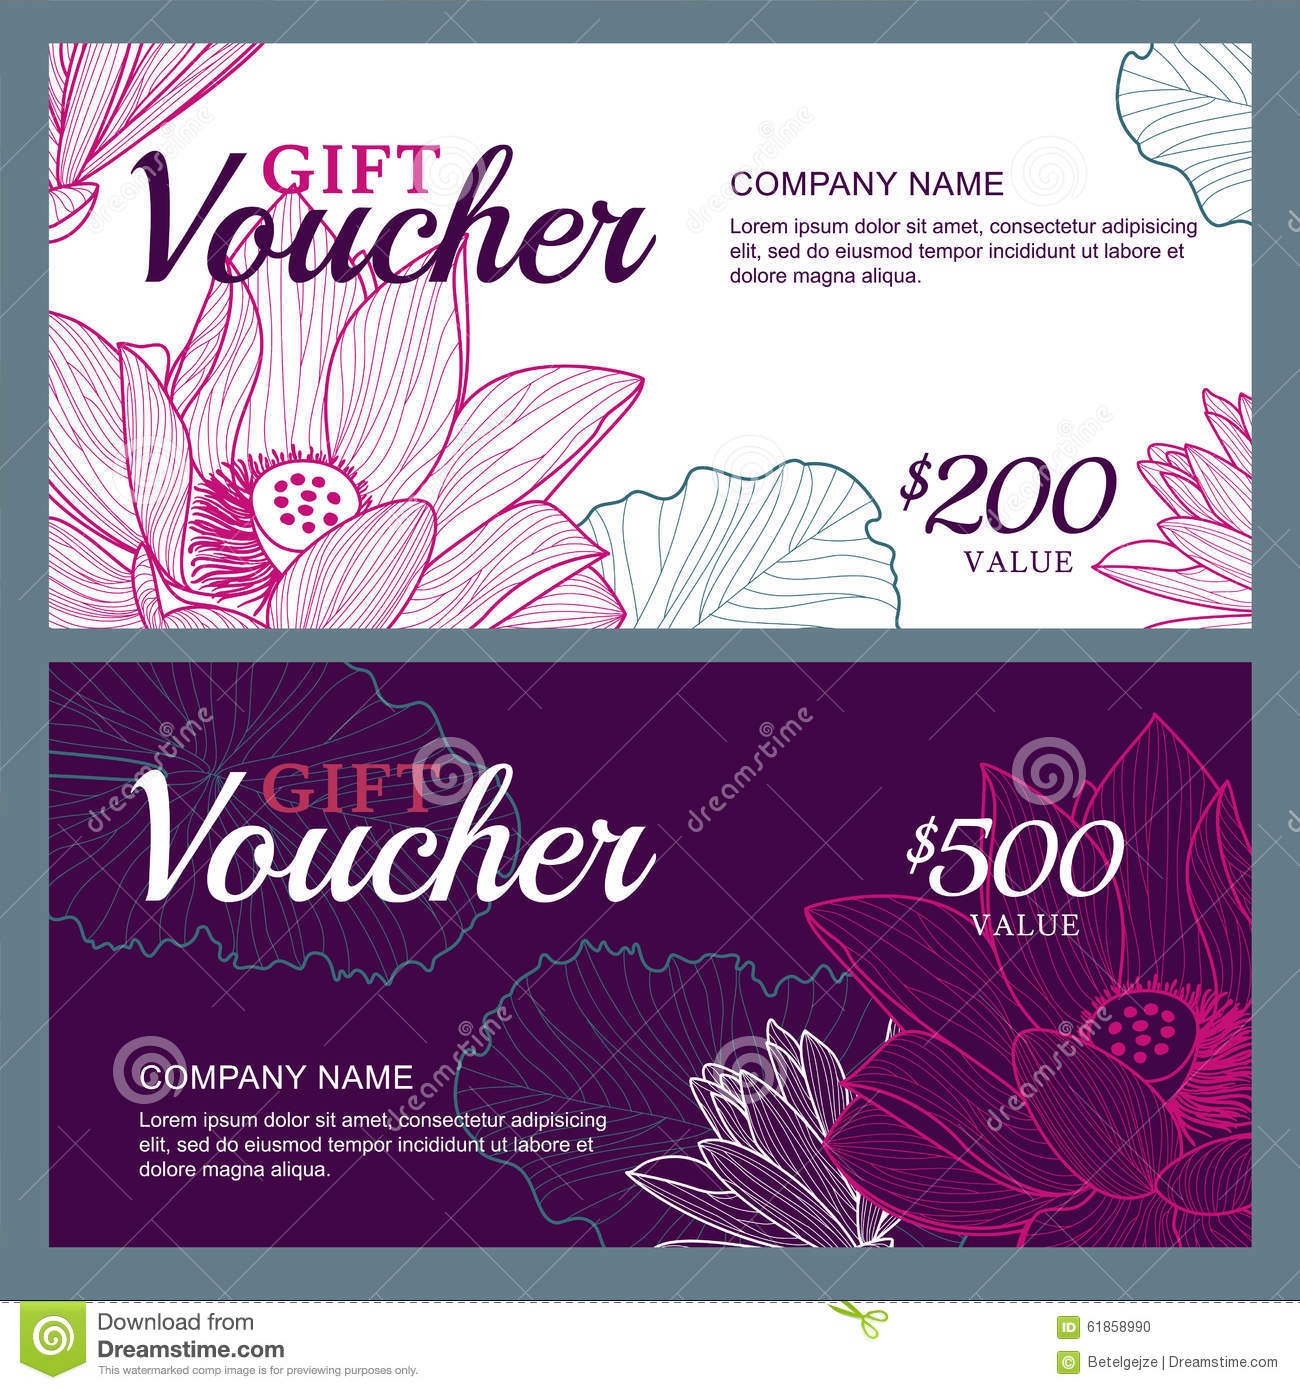 Vector Gift Voucher Template With Lotus Lily Flowers